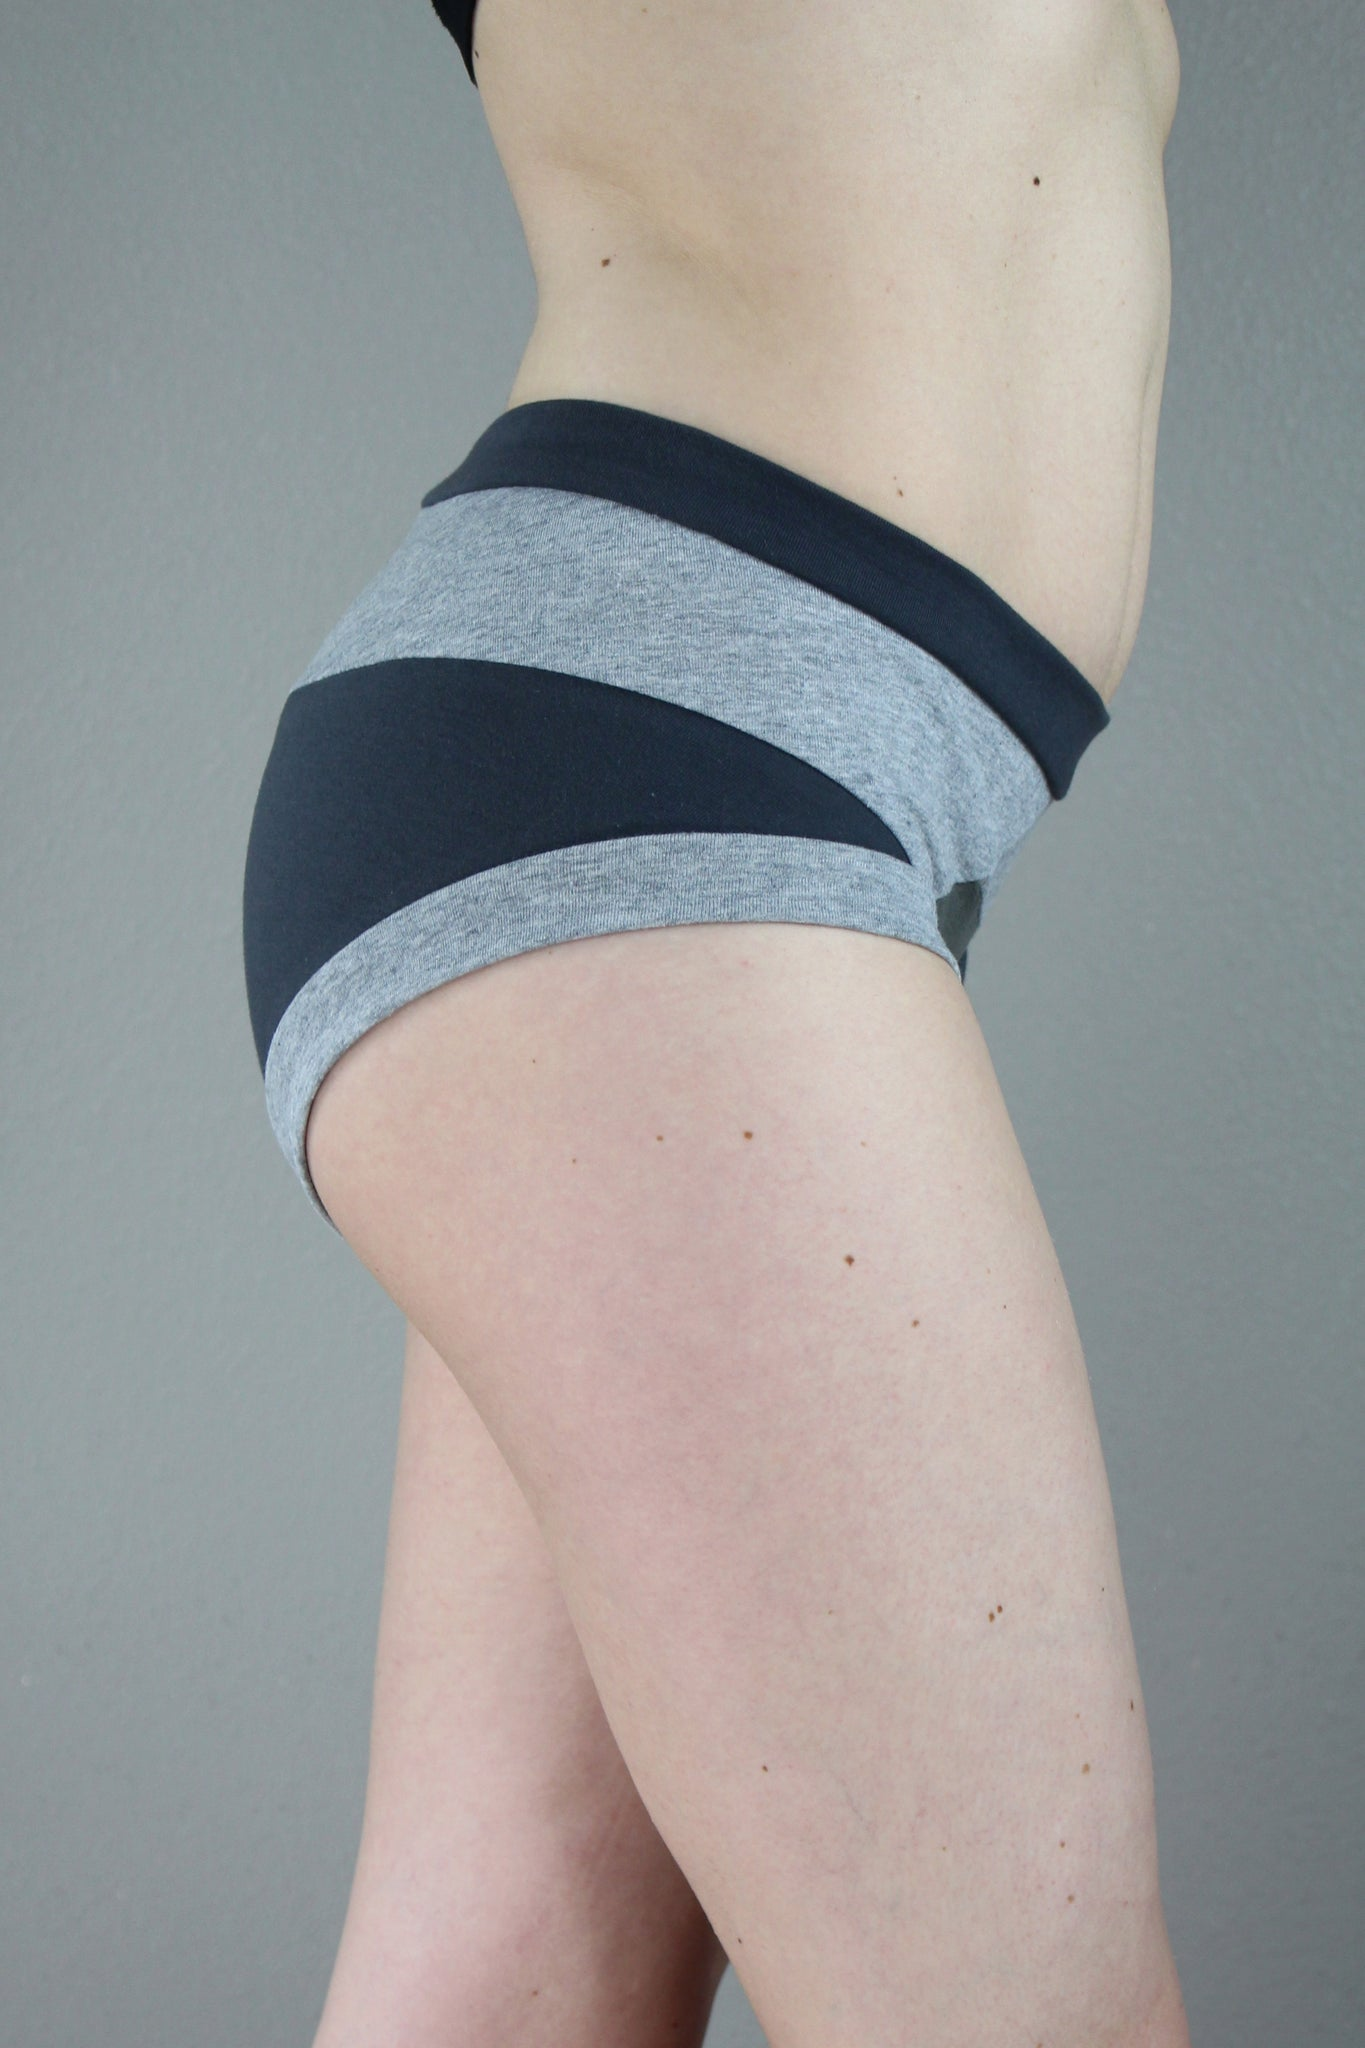 Shades of Grey Panties, Brief Panties, Color block